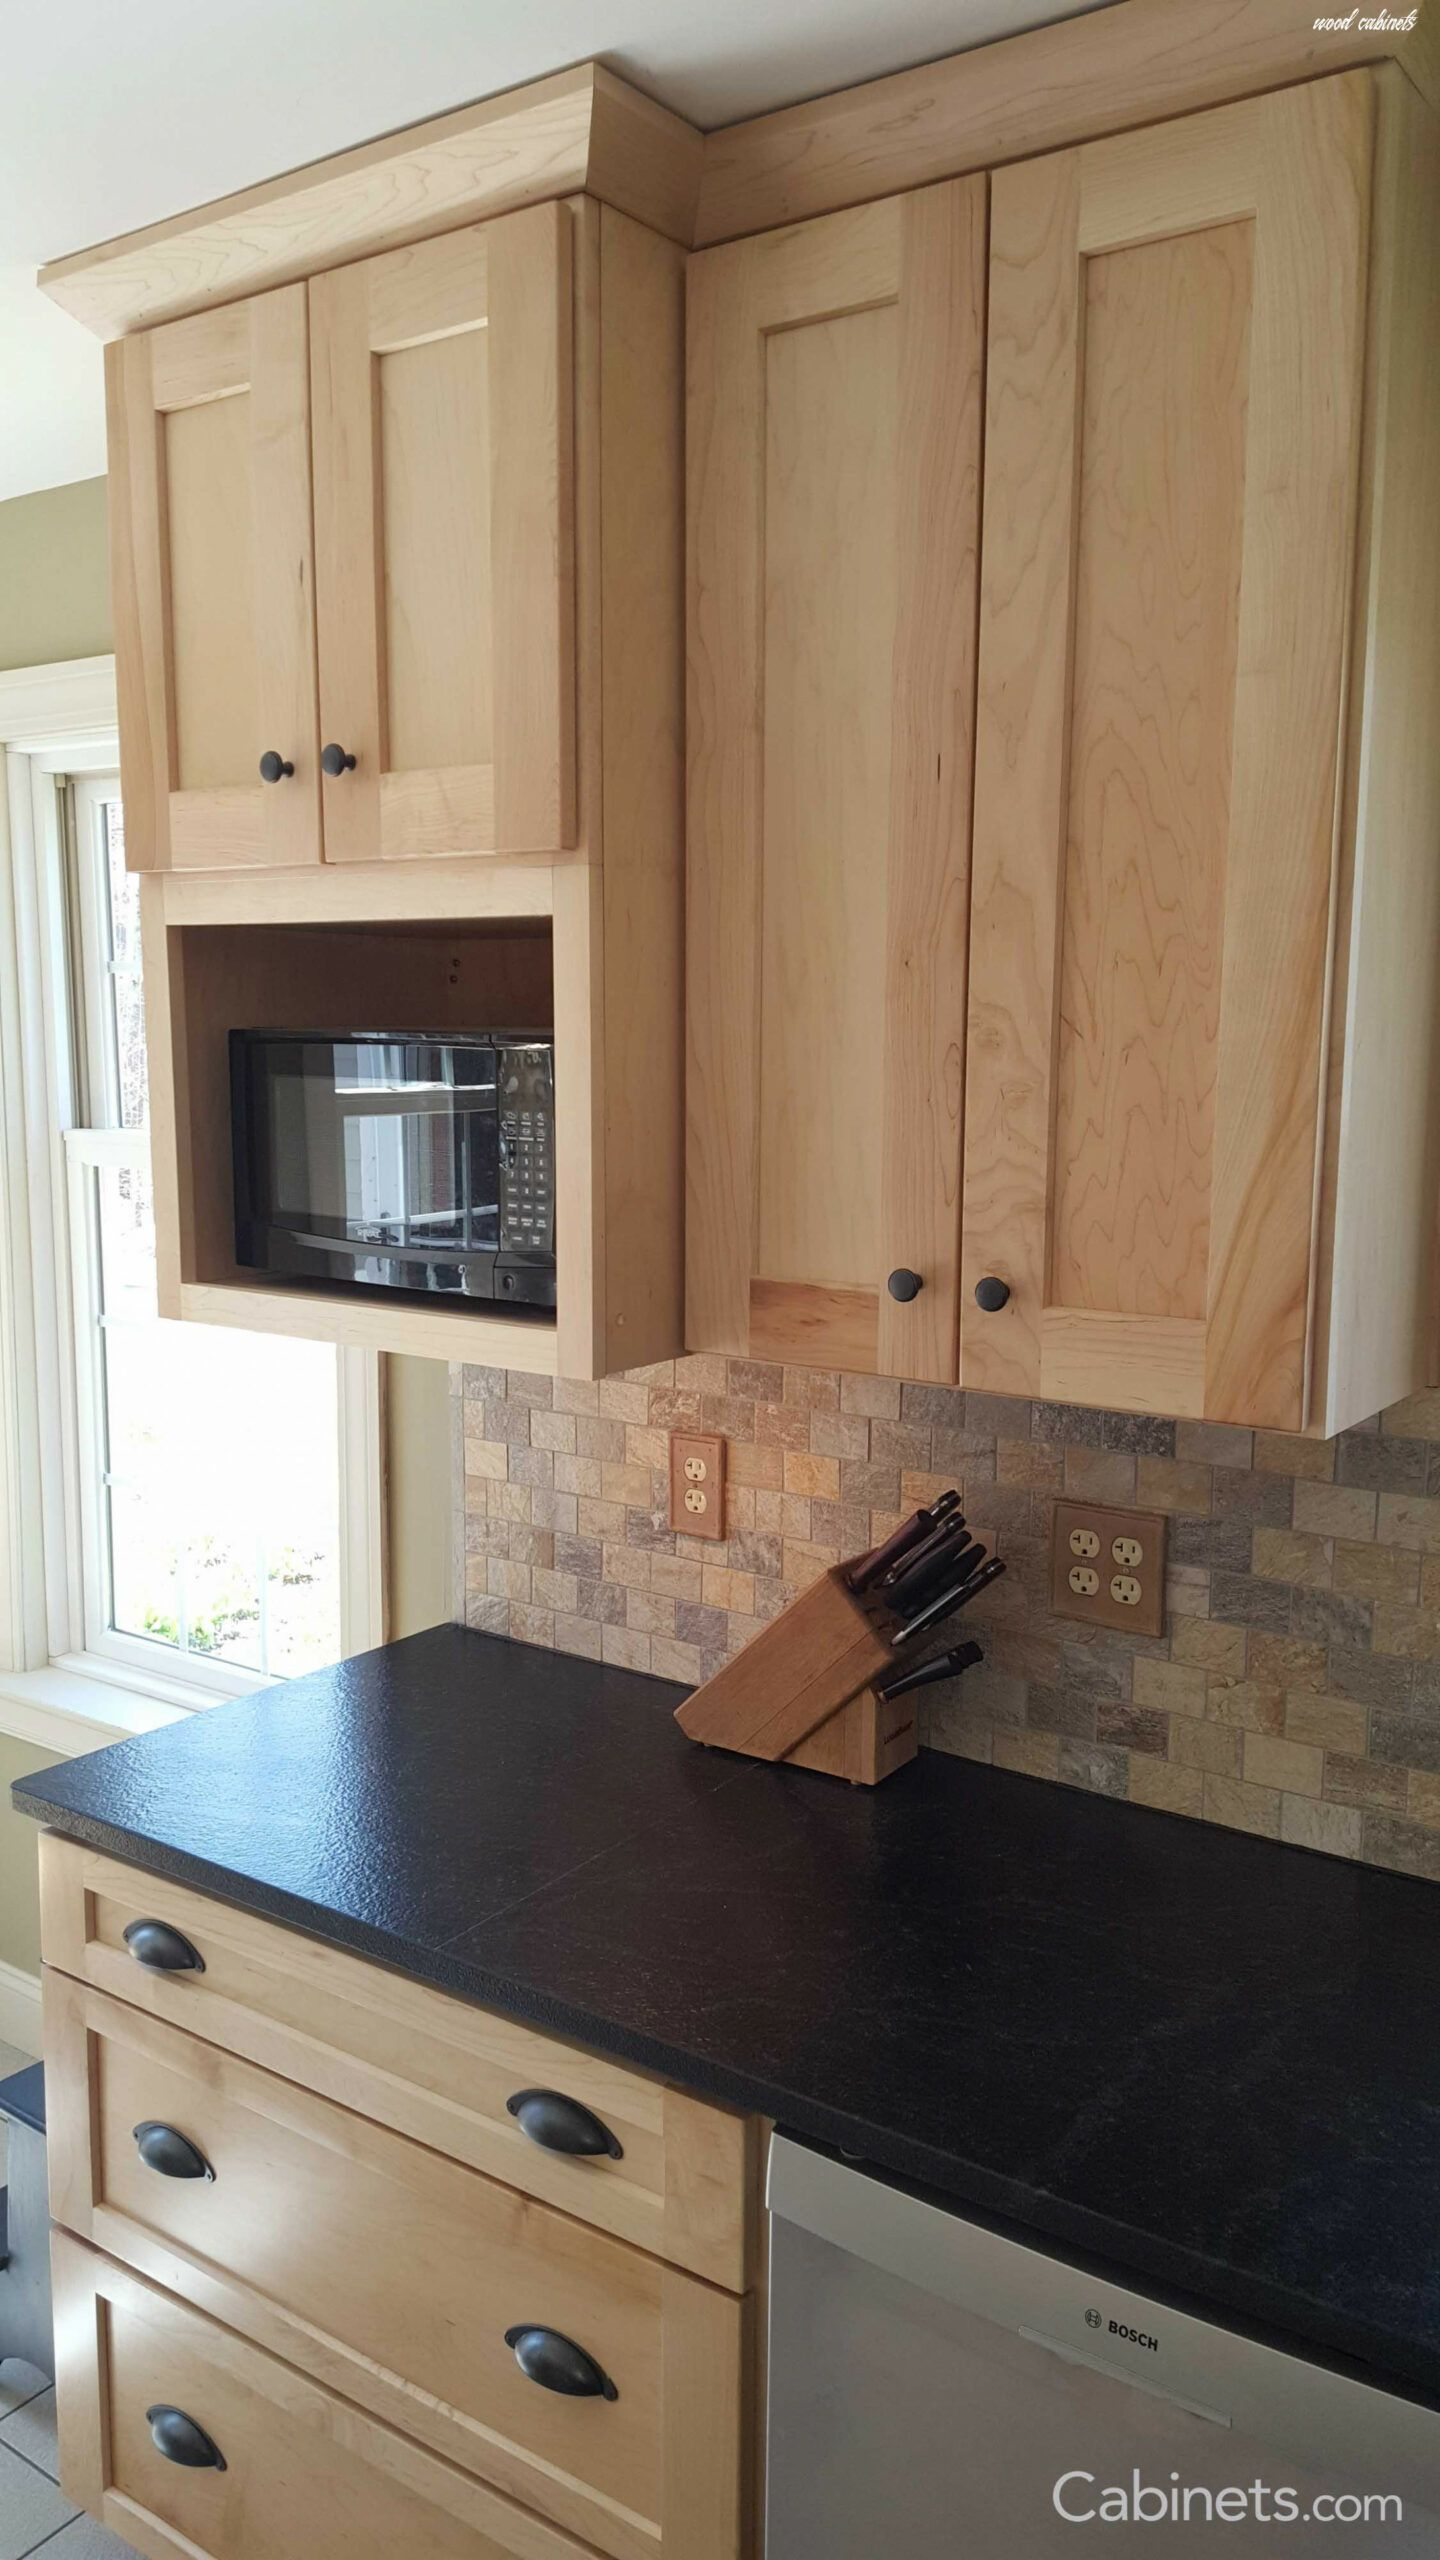 The Modern Rules Of Wood Cabinets In 2020 Natural Wood Kitchen Cabinets Maple Kitchen Cabinets Stained Kitchen Cabinets